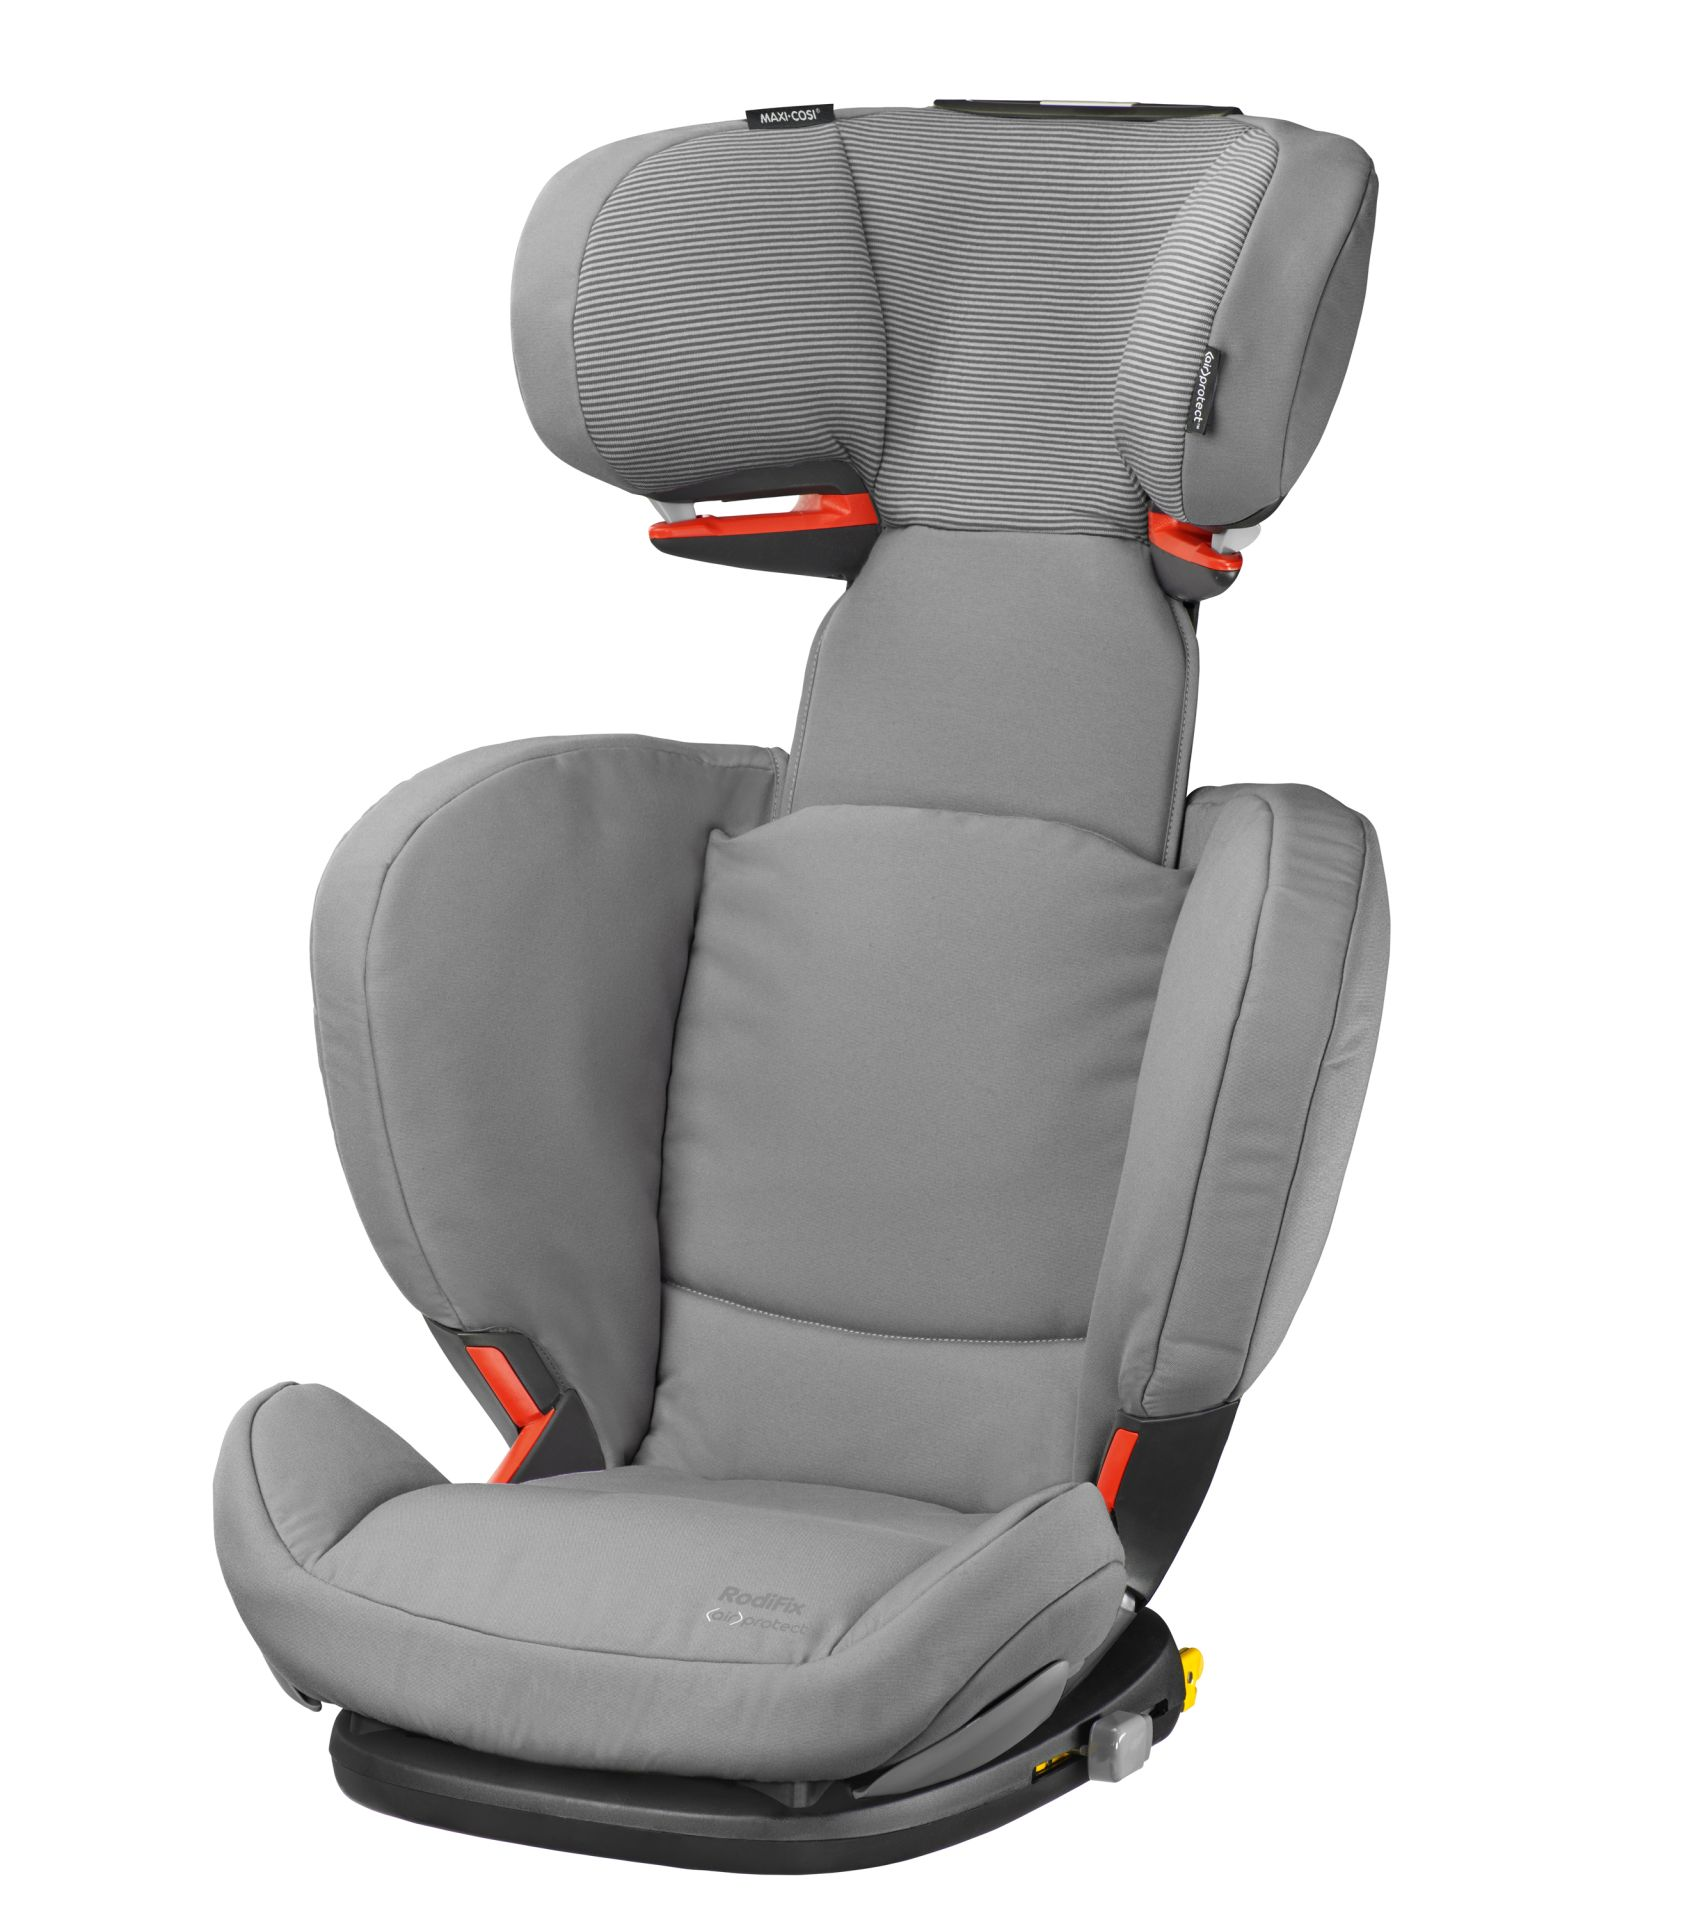 maxi cosi child car seat rodifix airprotect 2017 concrete. Black Bedroom Furniture Sets. Home Design Ideas